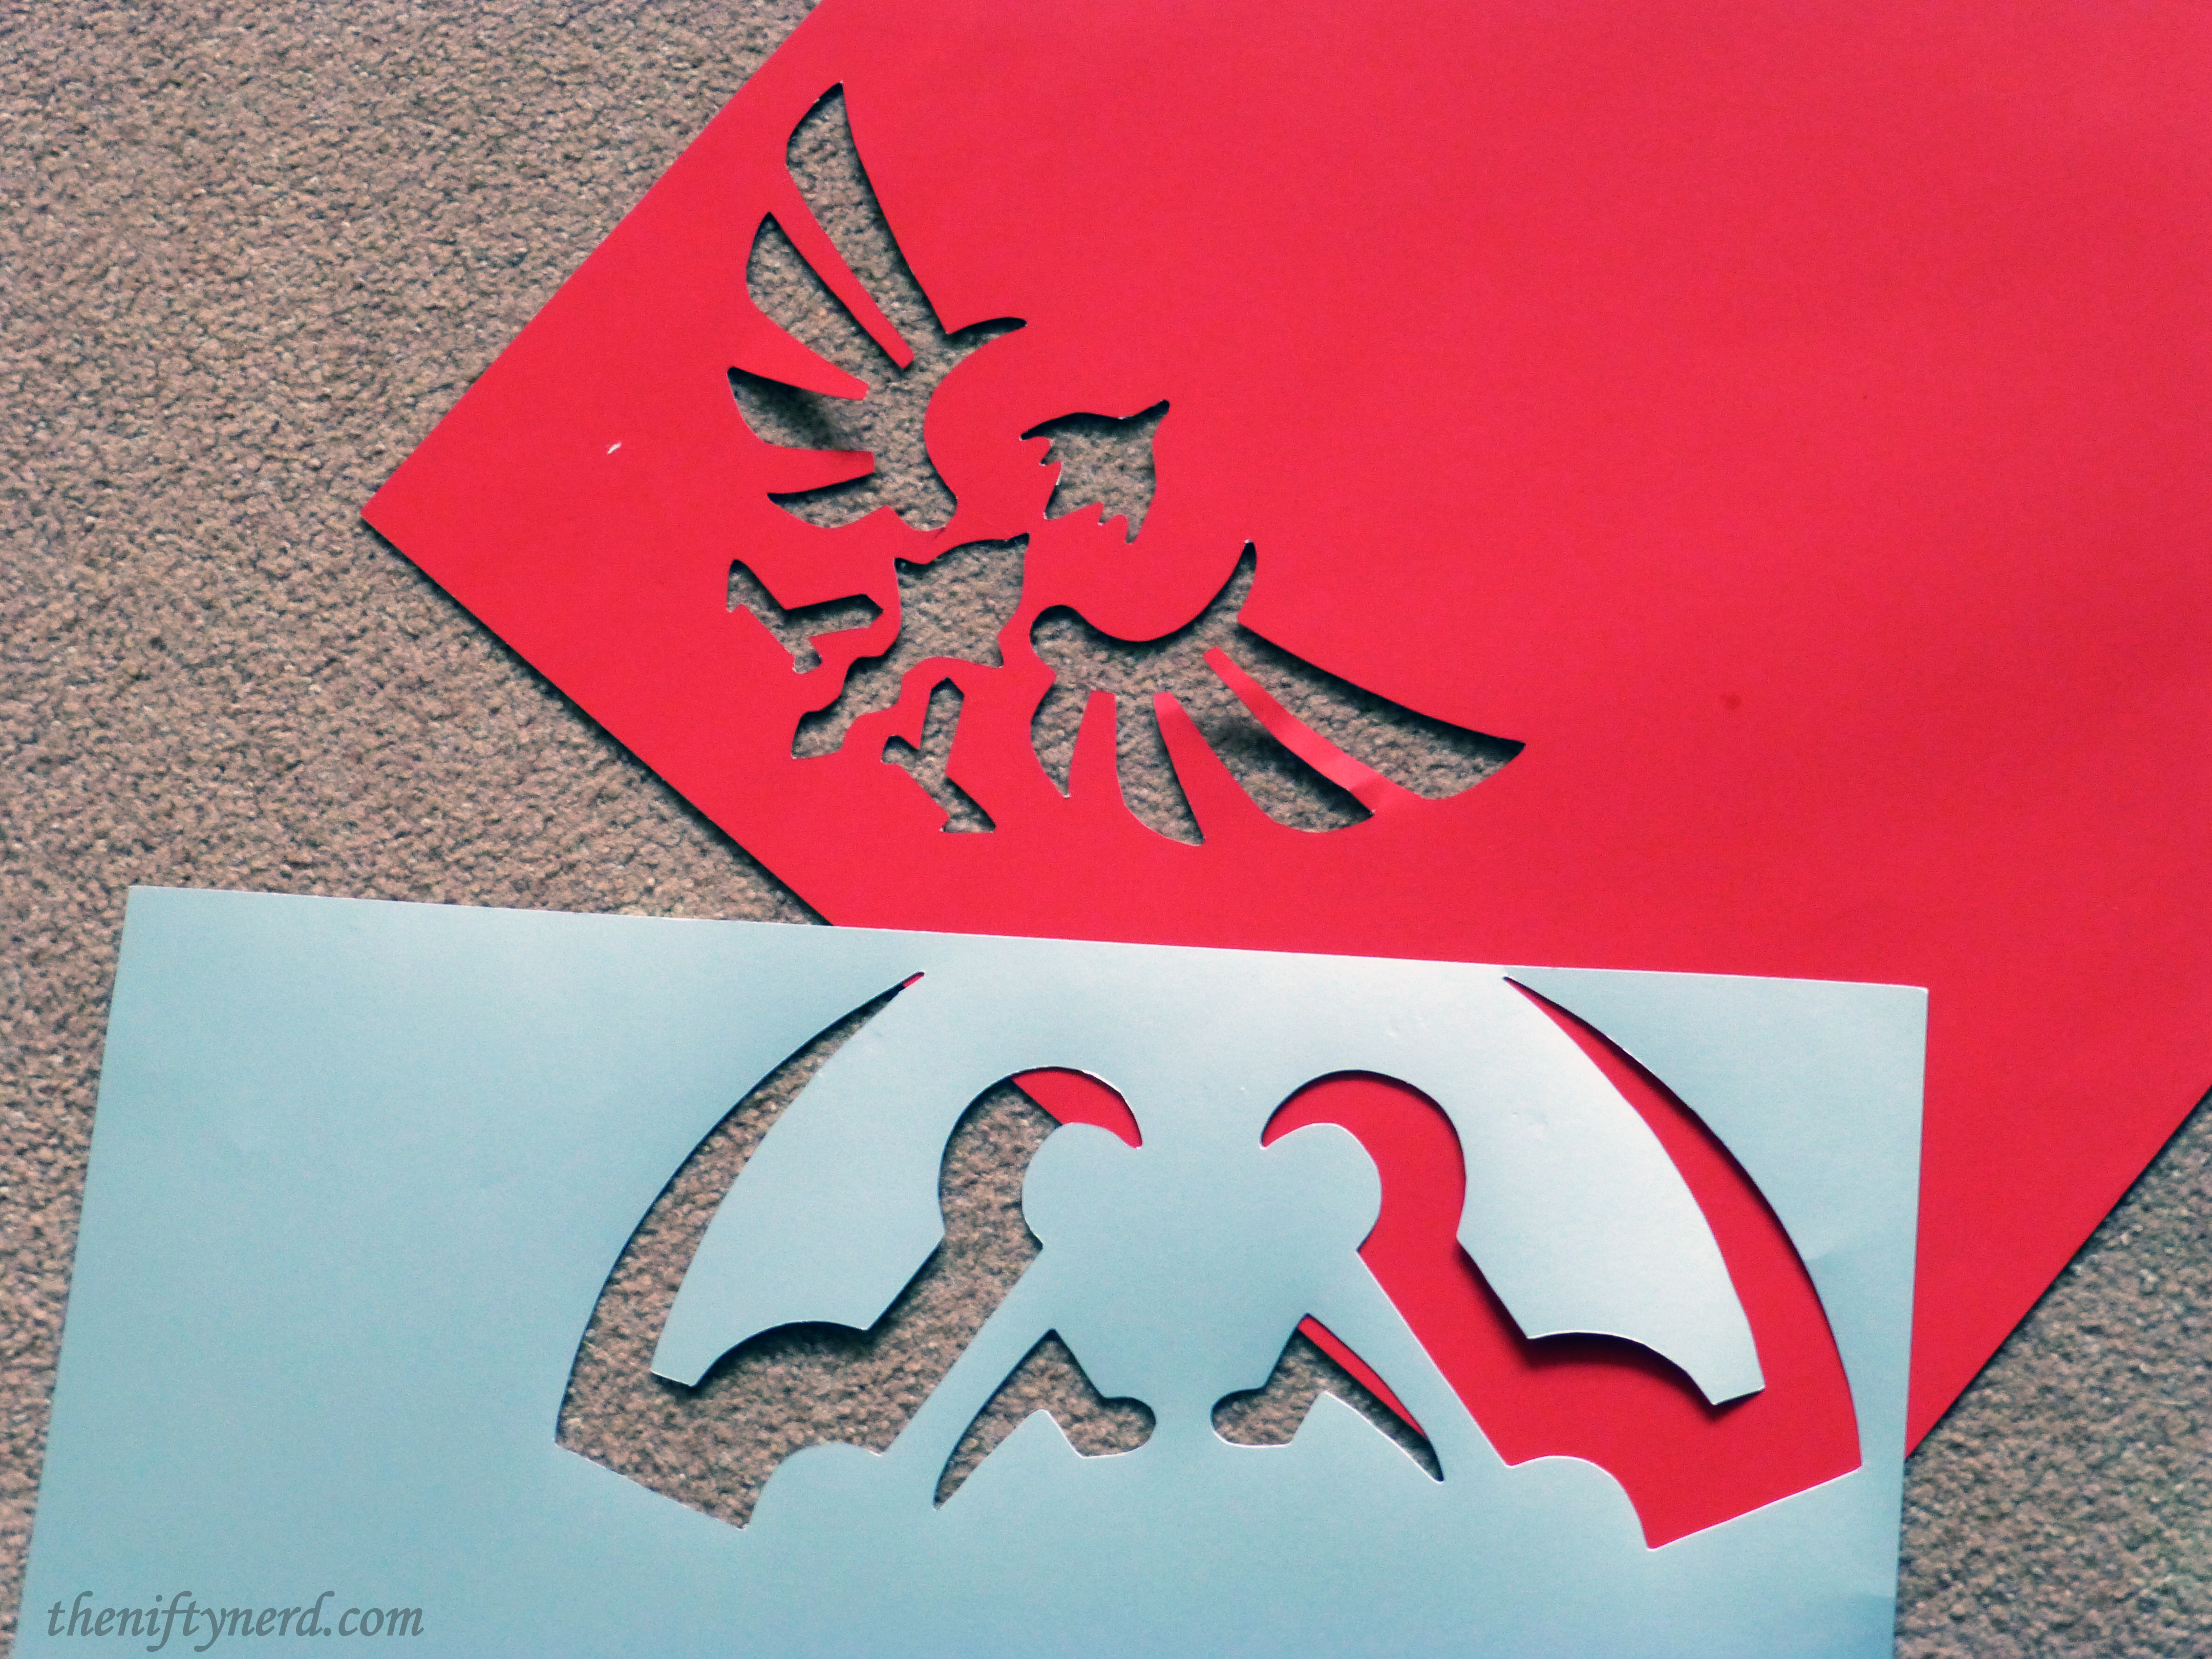 cutting out Link's shield details from posterboard